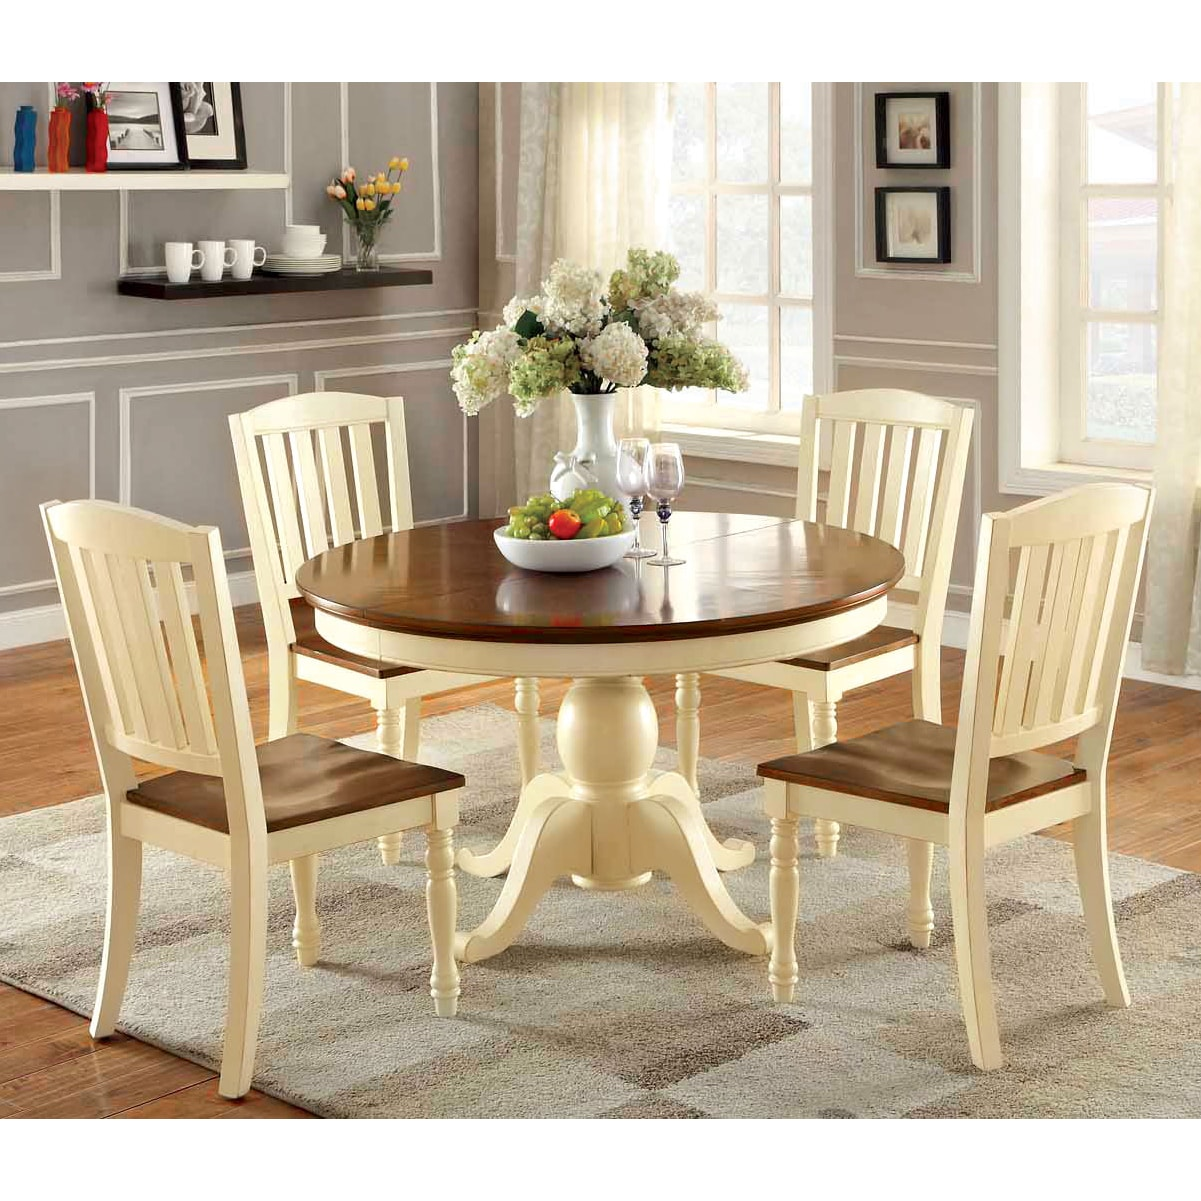 Furniture Of America Bethannie 5 Piece Cottage Style Oval Dining Set Free Shipping Today 9932230